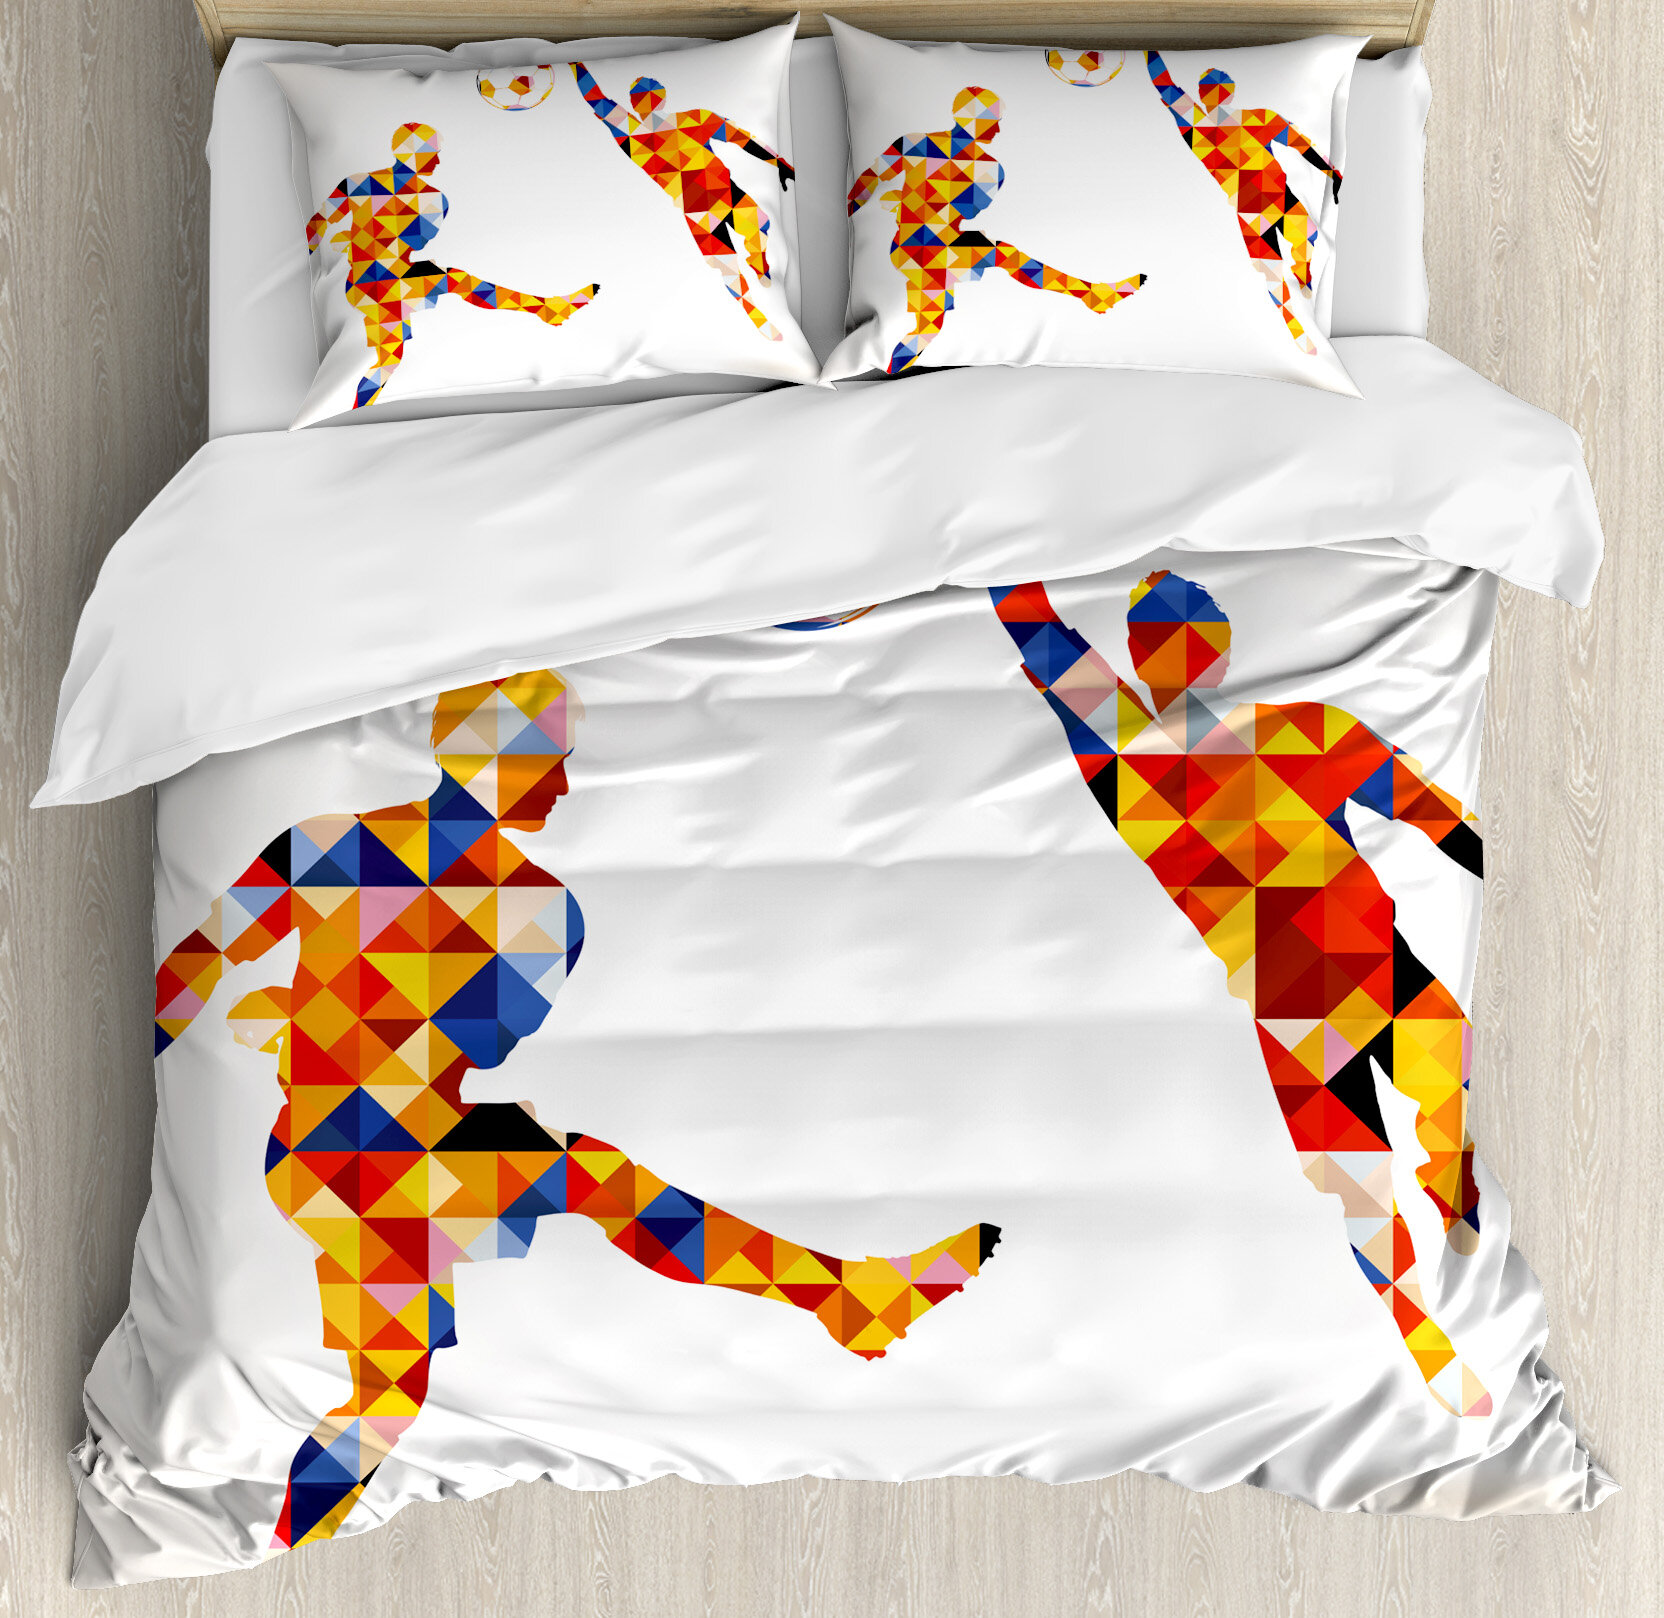 East Urban Home Sports Abstract With Football Soccer Players In - Geometrical-shapes-on-bedding